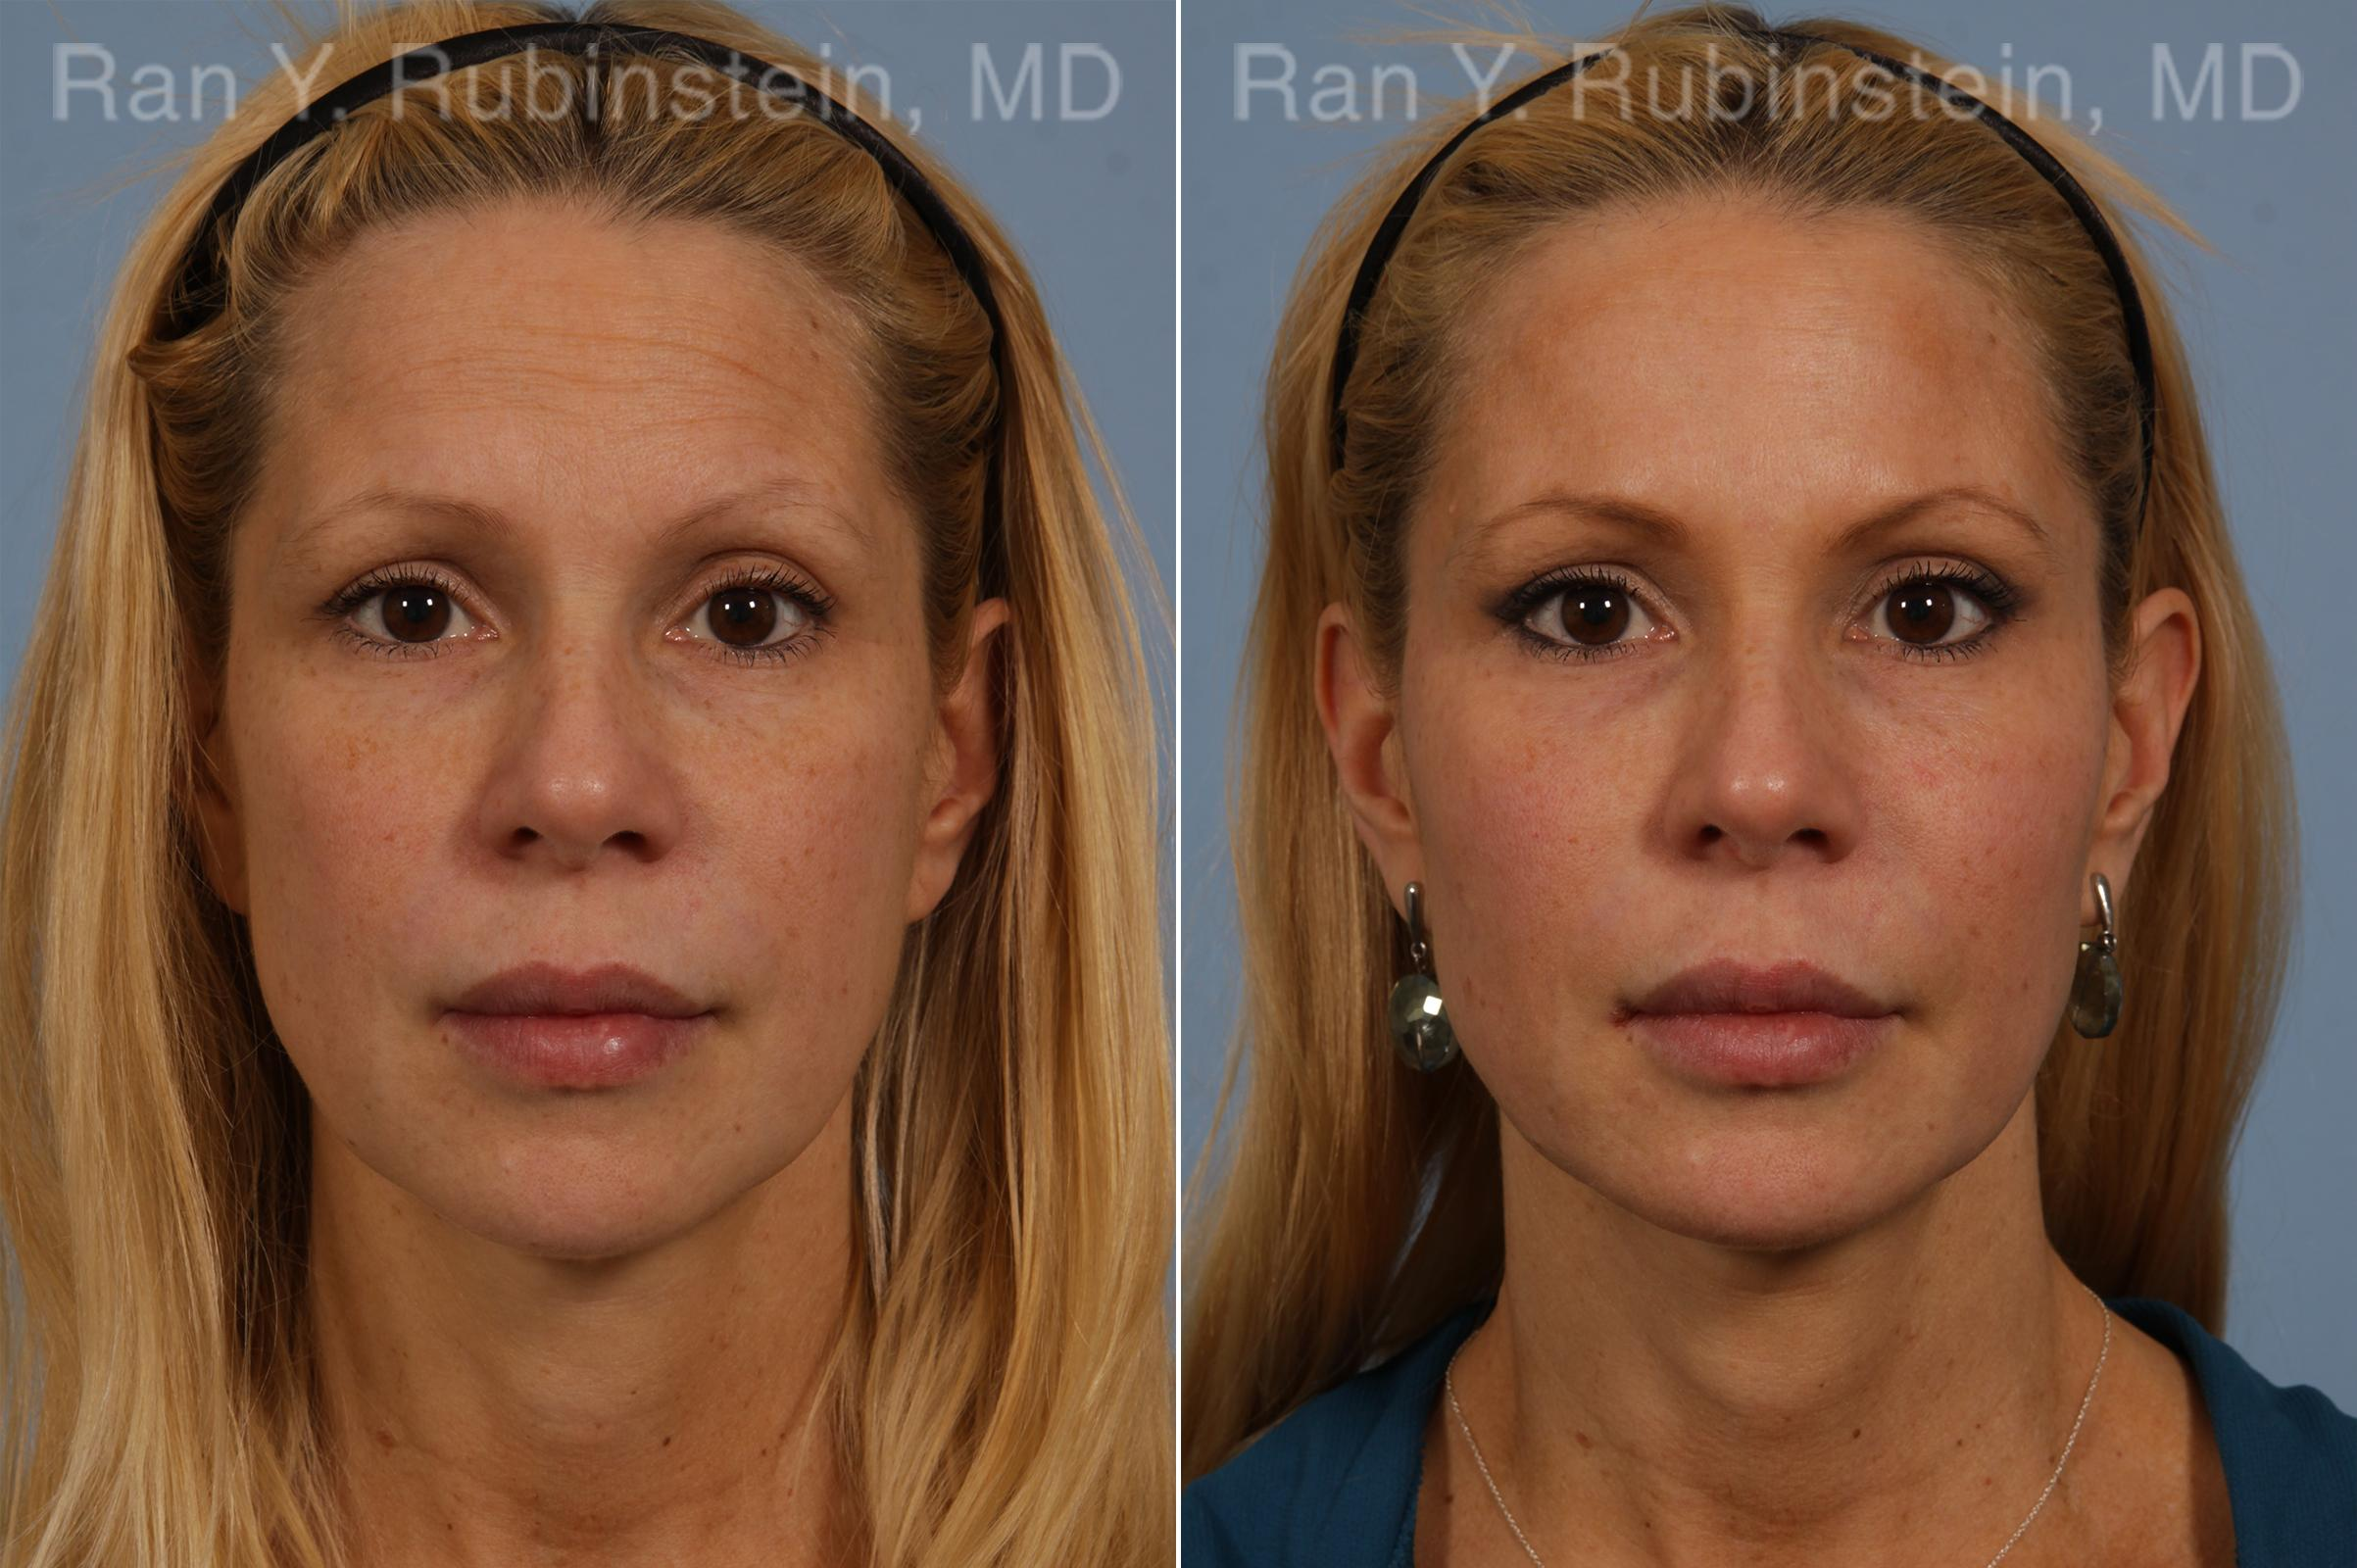 before and after photos in Newburgh, NY, Liquid Facelift | Hudson Valley, NY